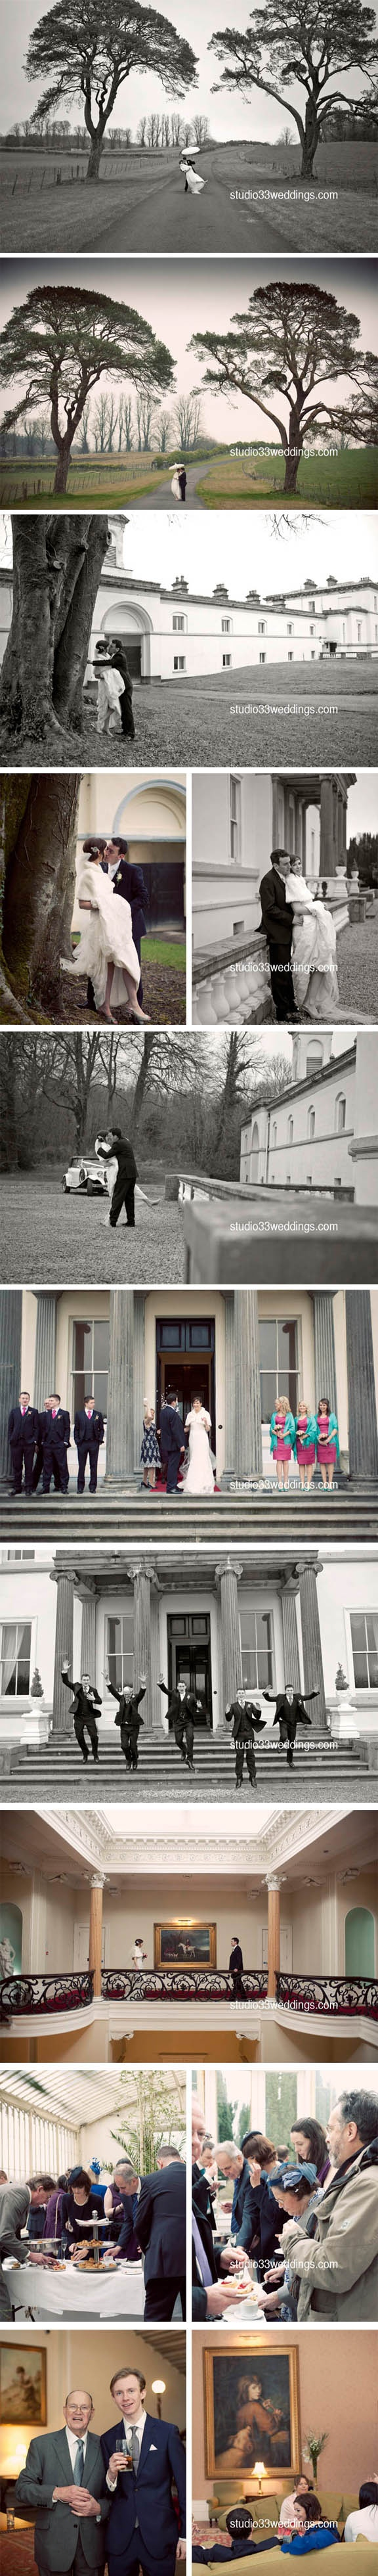 #Middleton Park House wedding by studio33weddings.com